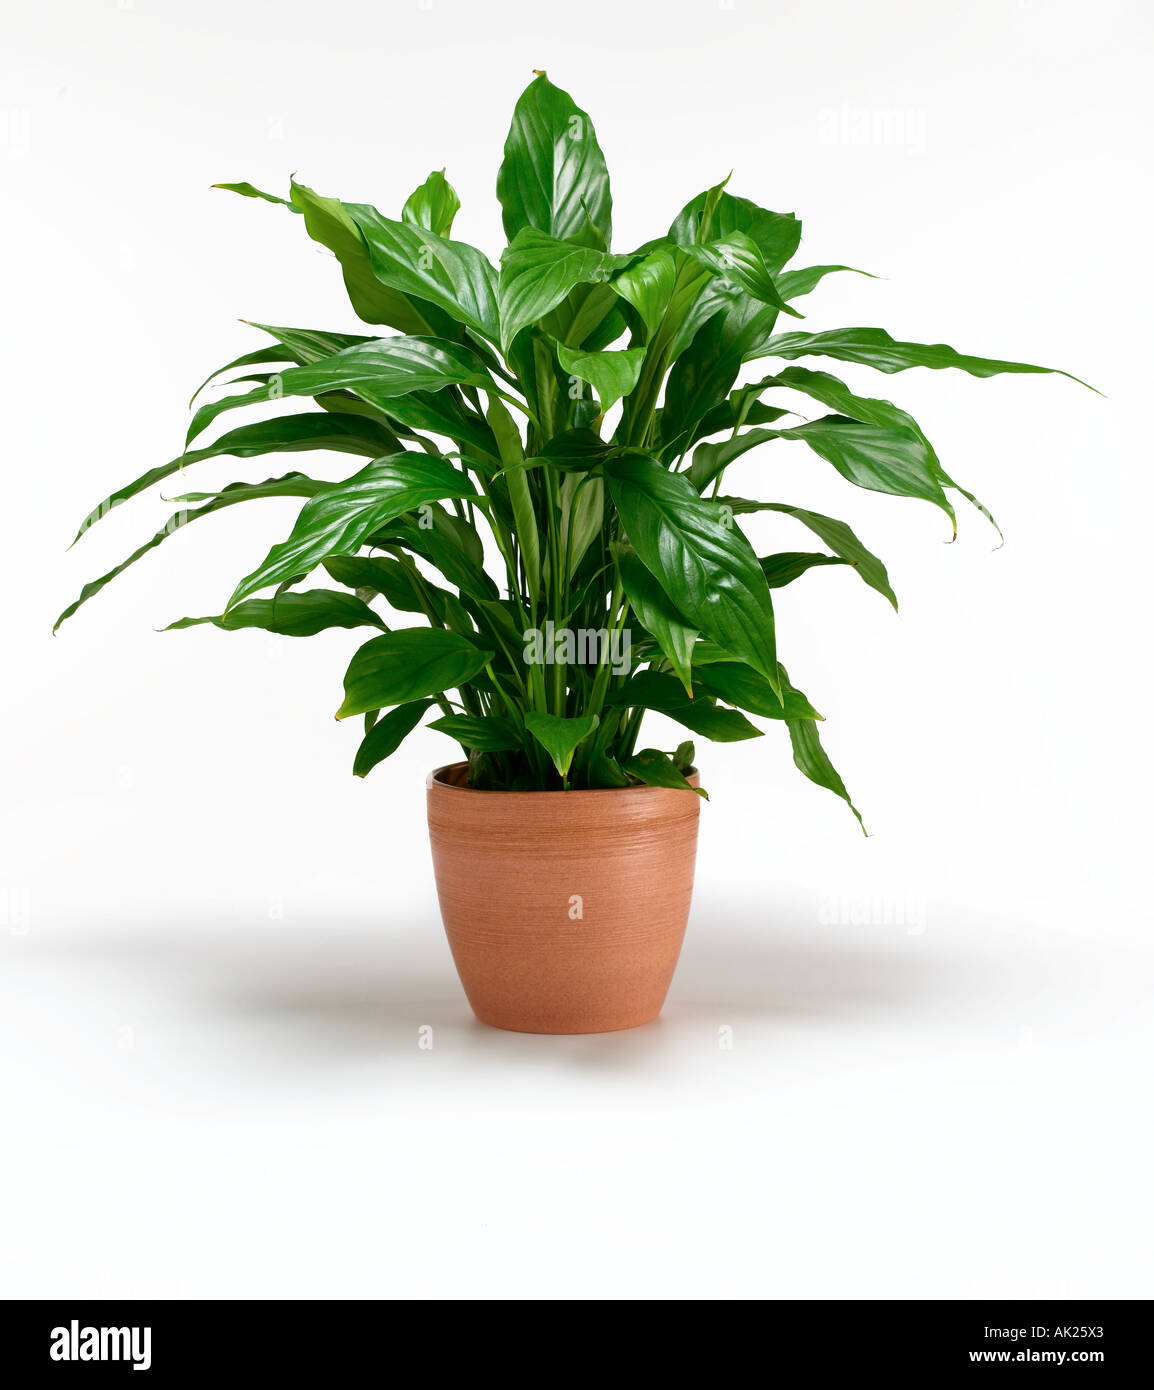 Healthy house plant stock photo royalty free image 8491618 alamy - Plants for every room in your home extra comfort and health ...